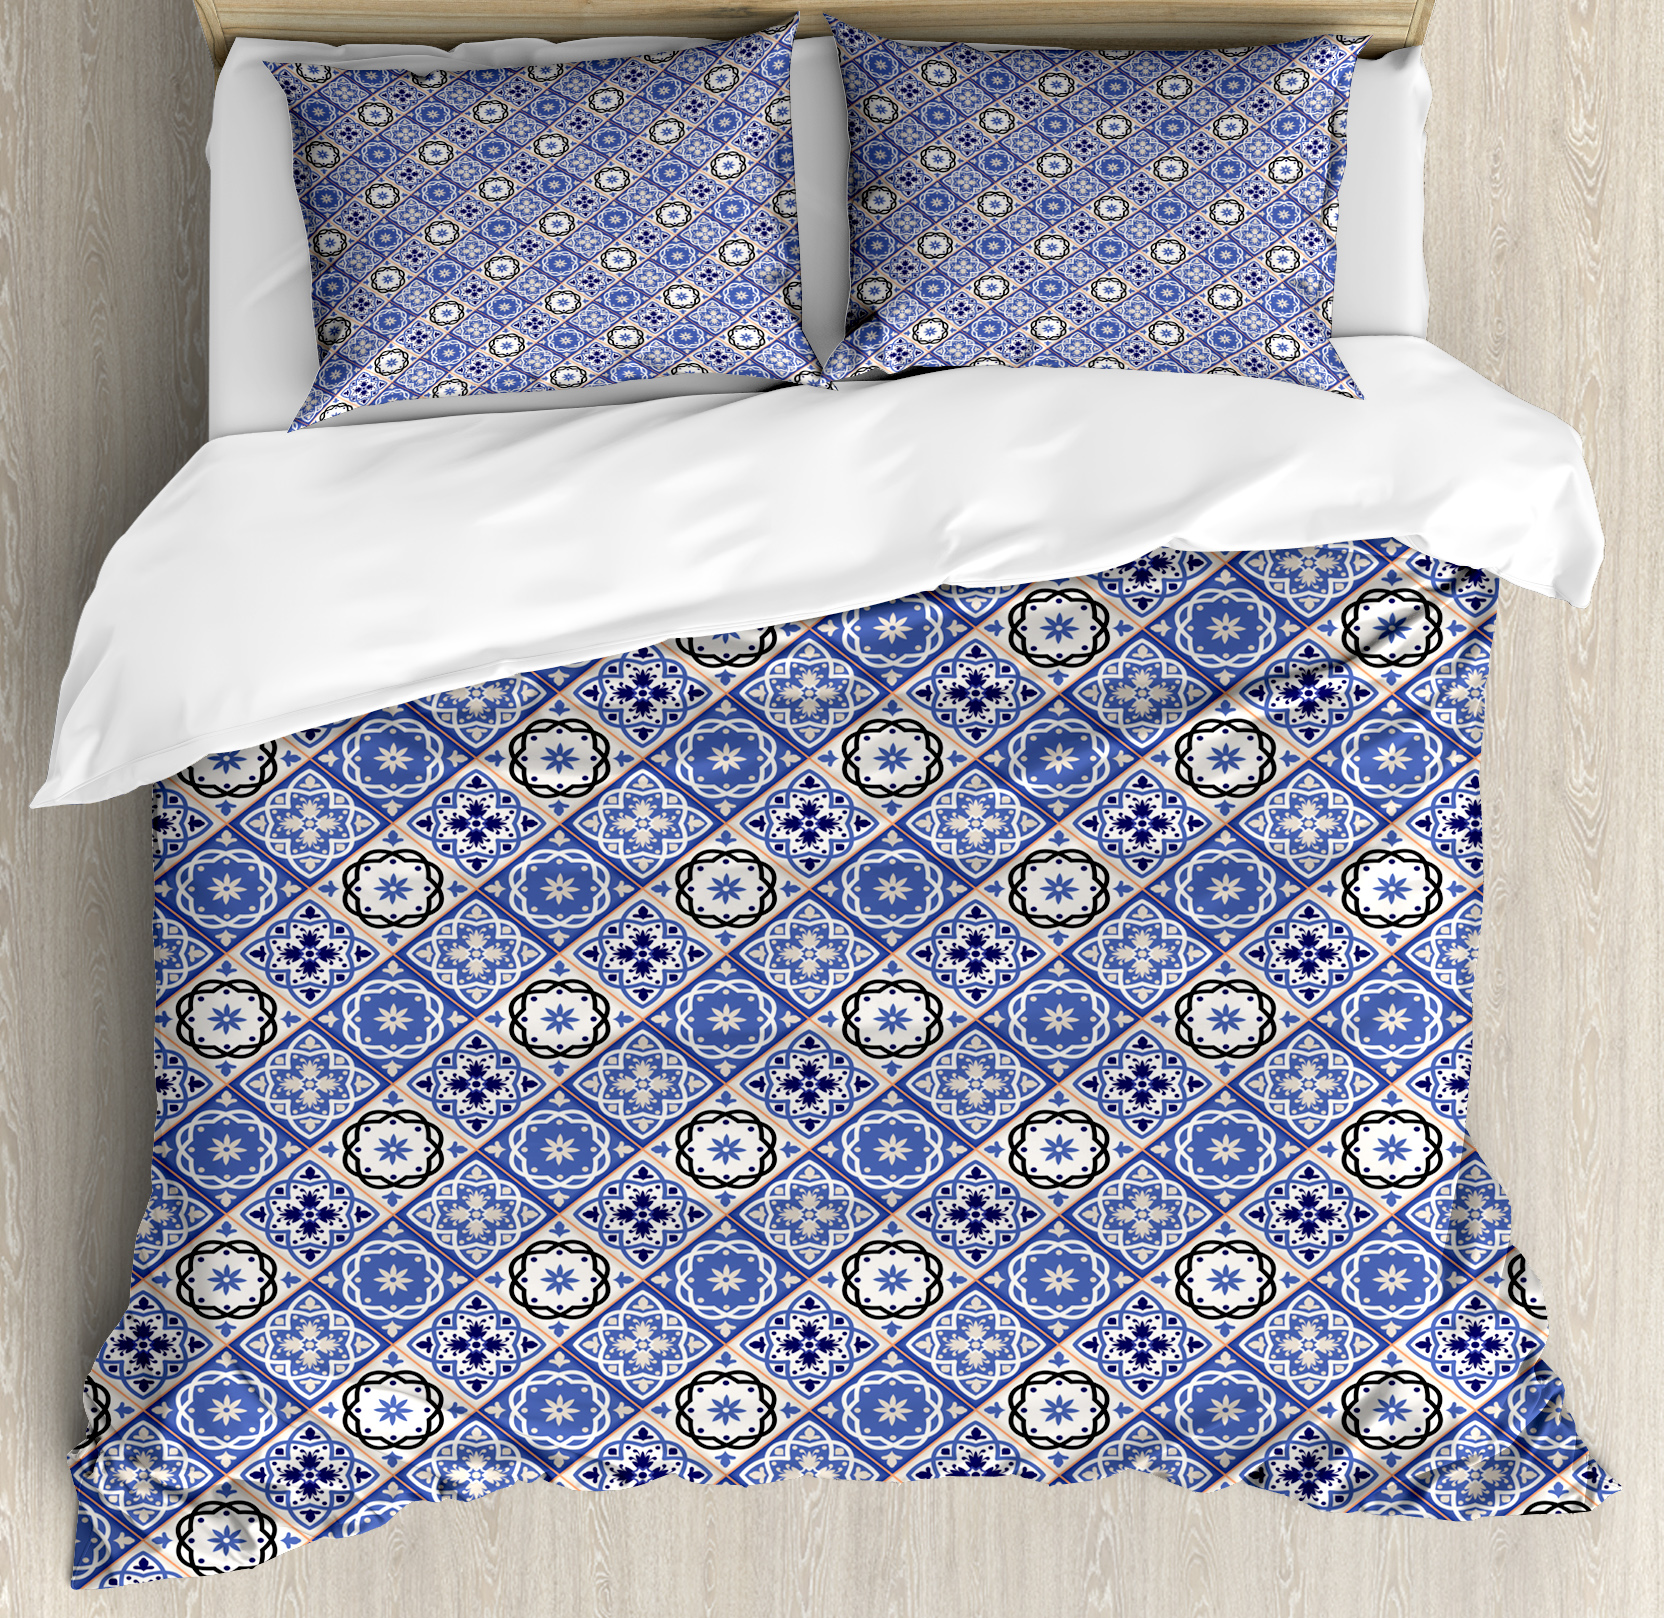 Black And Cream Duvet Sets Moroccan Queen Size Duvet Cover Set Geometric Tile Squares With Middle Eastern Arabesque Azulejo Design Decorative 3 Piece Bedding Set With 2 Pillow